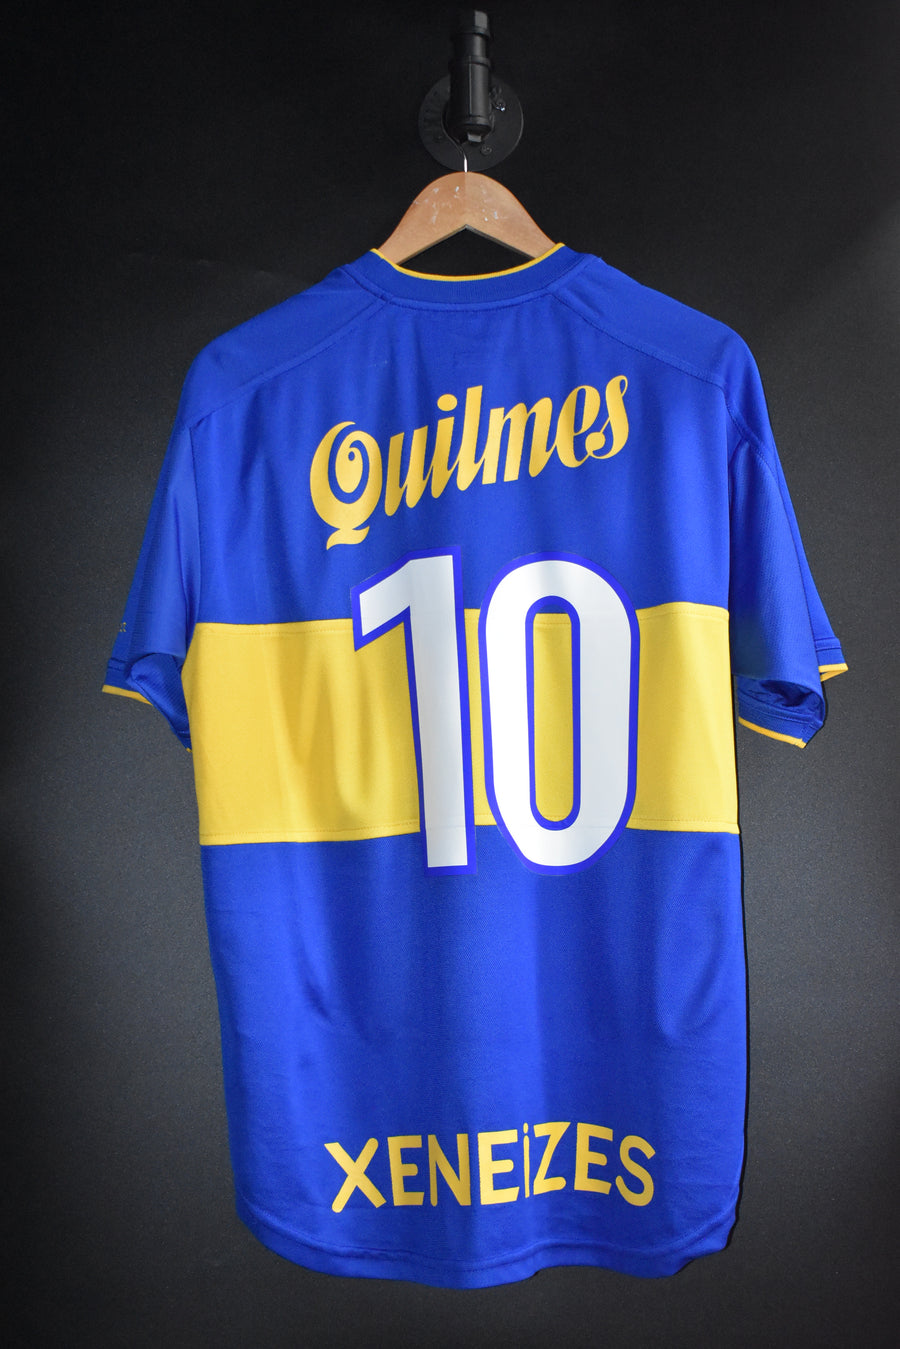 SPAIN 2002 WORLD CUP ORIGINAL JERSEY Size M (EXCELLENT)